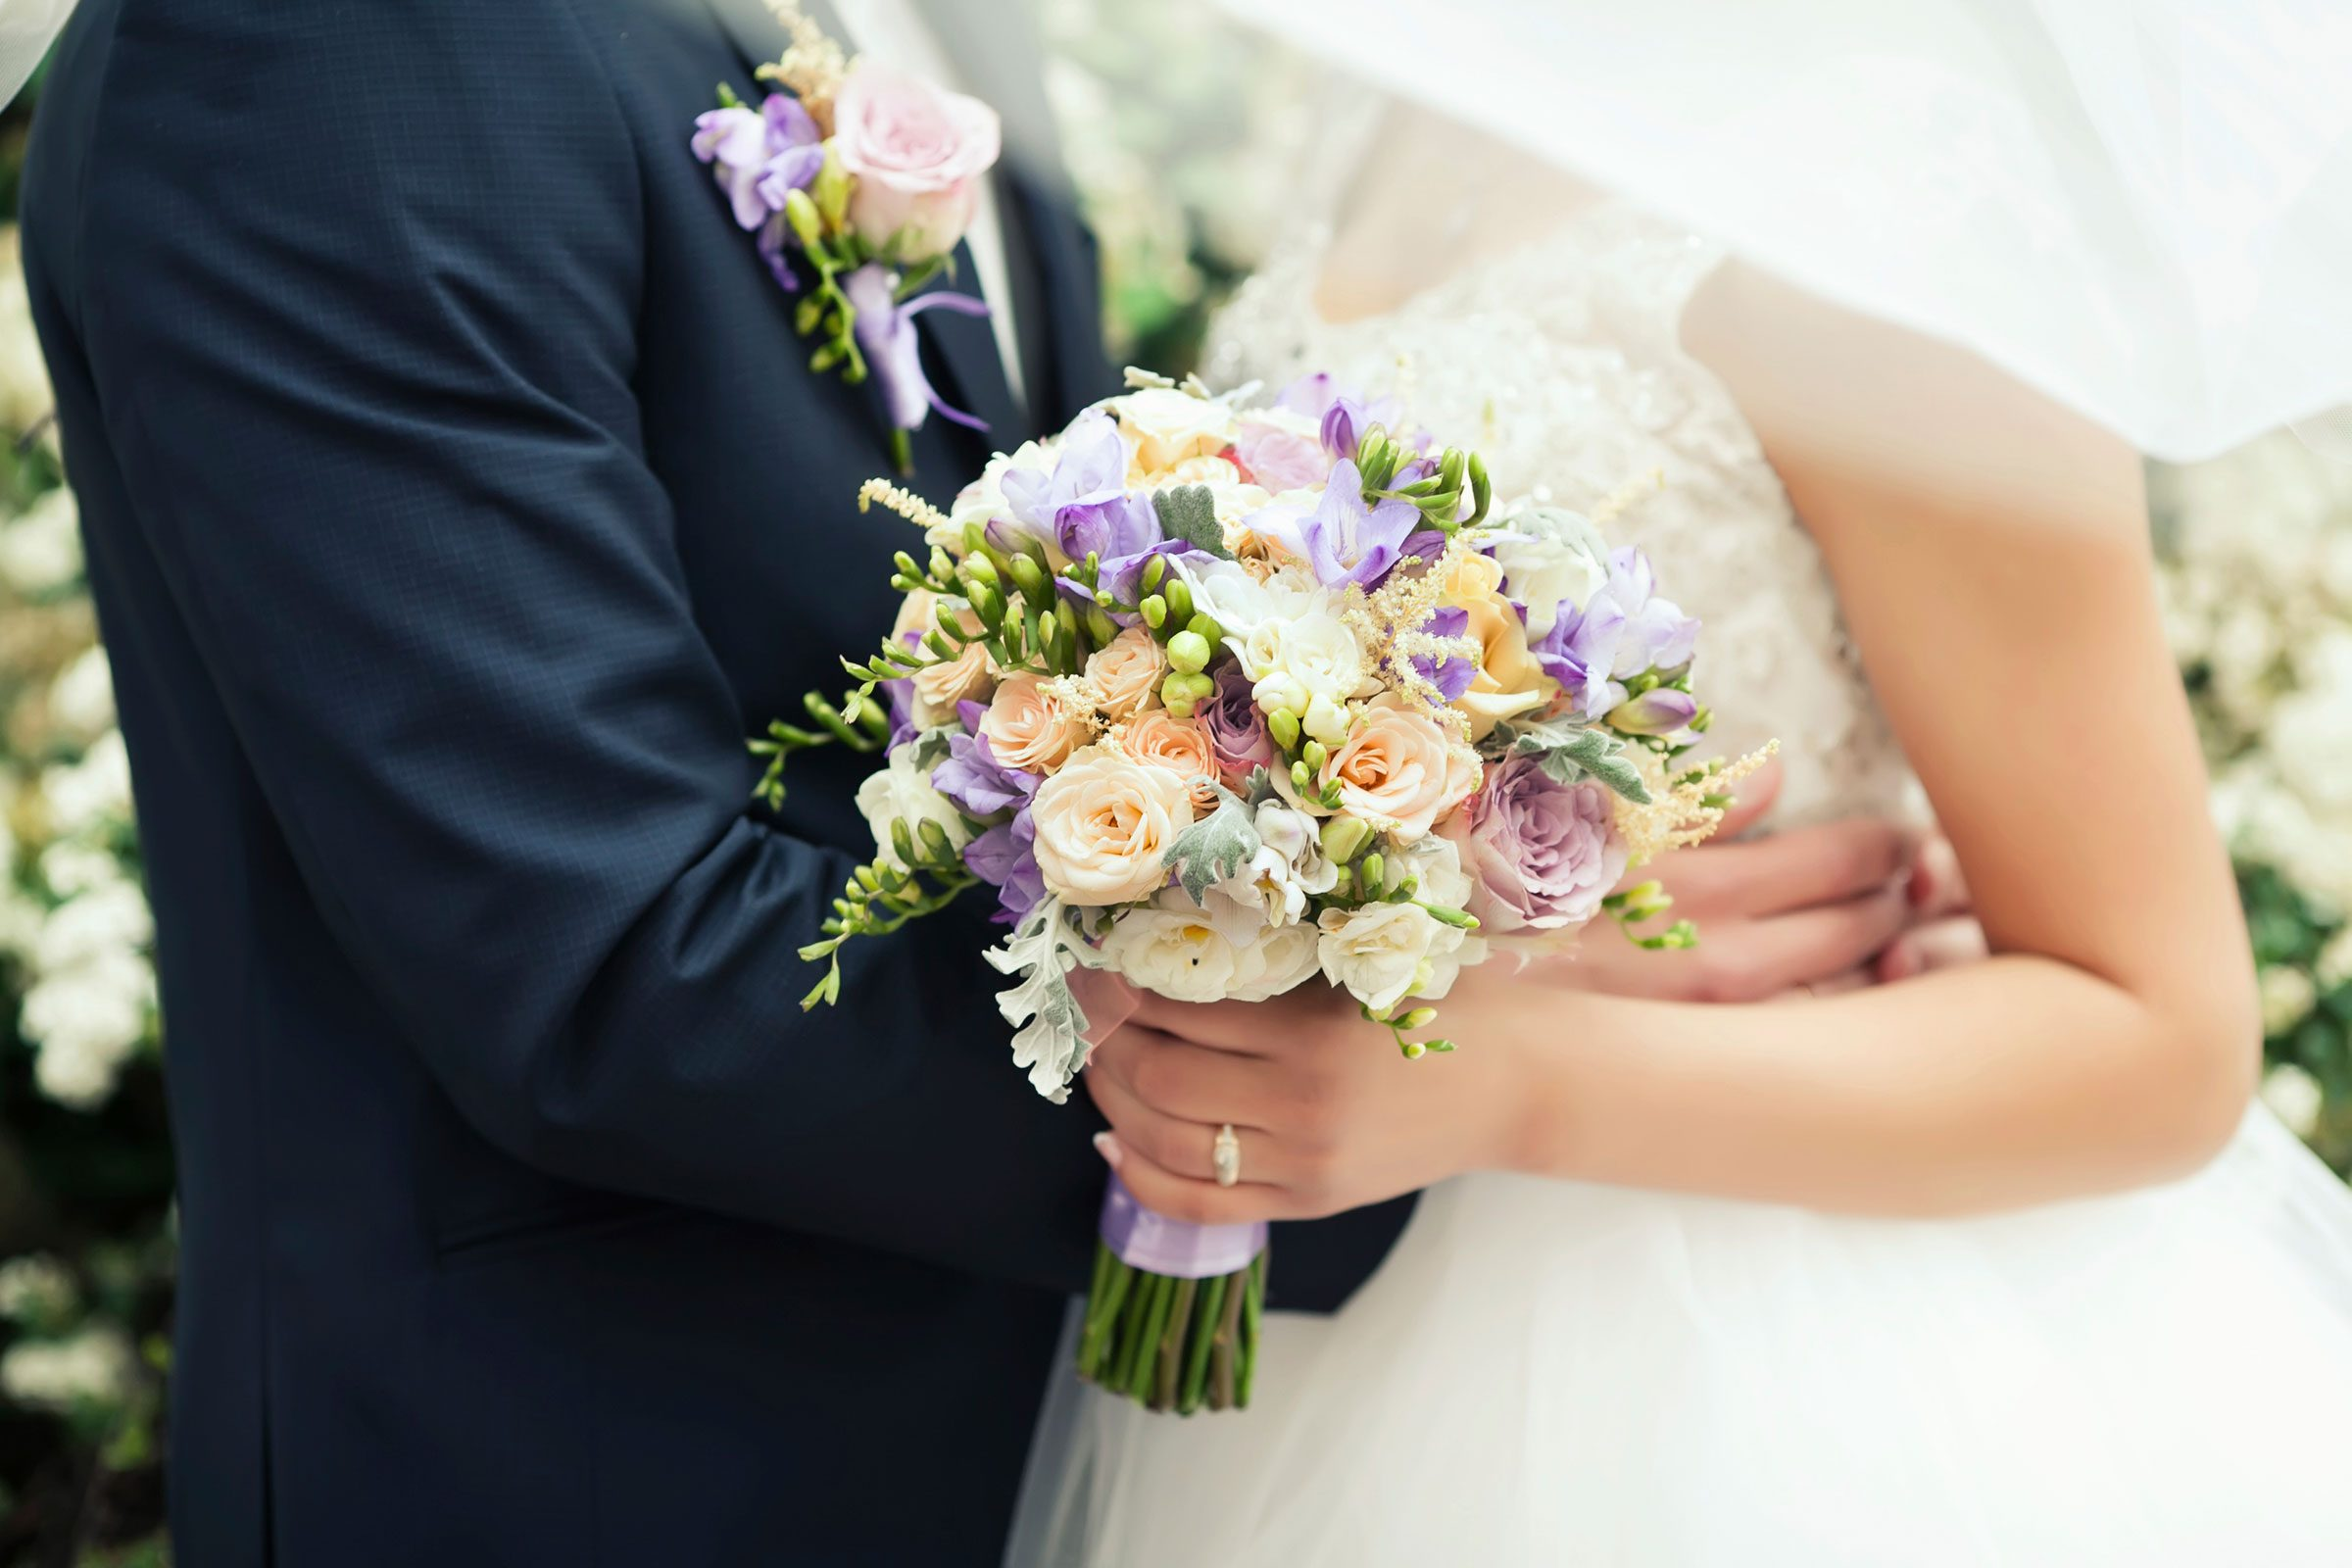 Believe it or not, weddings are not that profitable